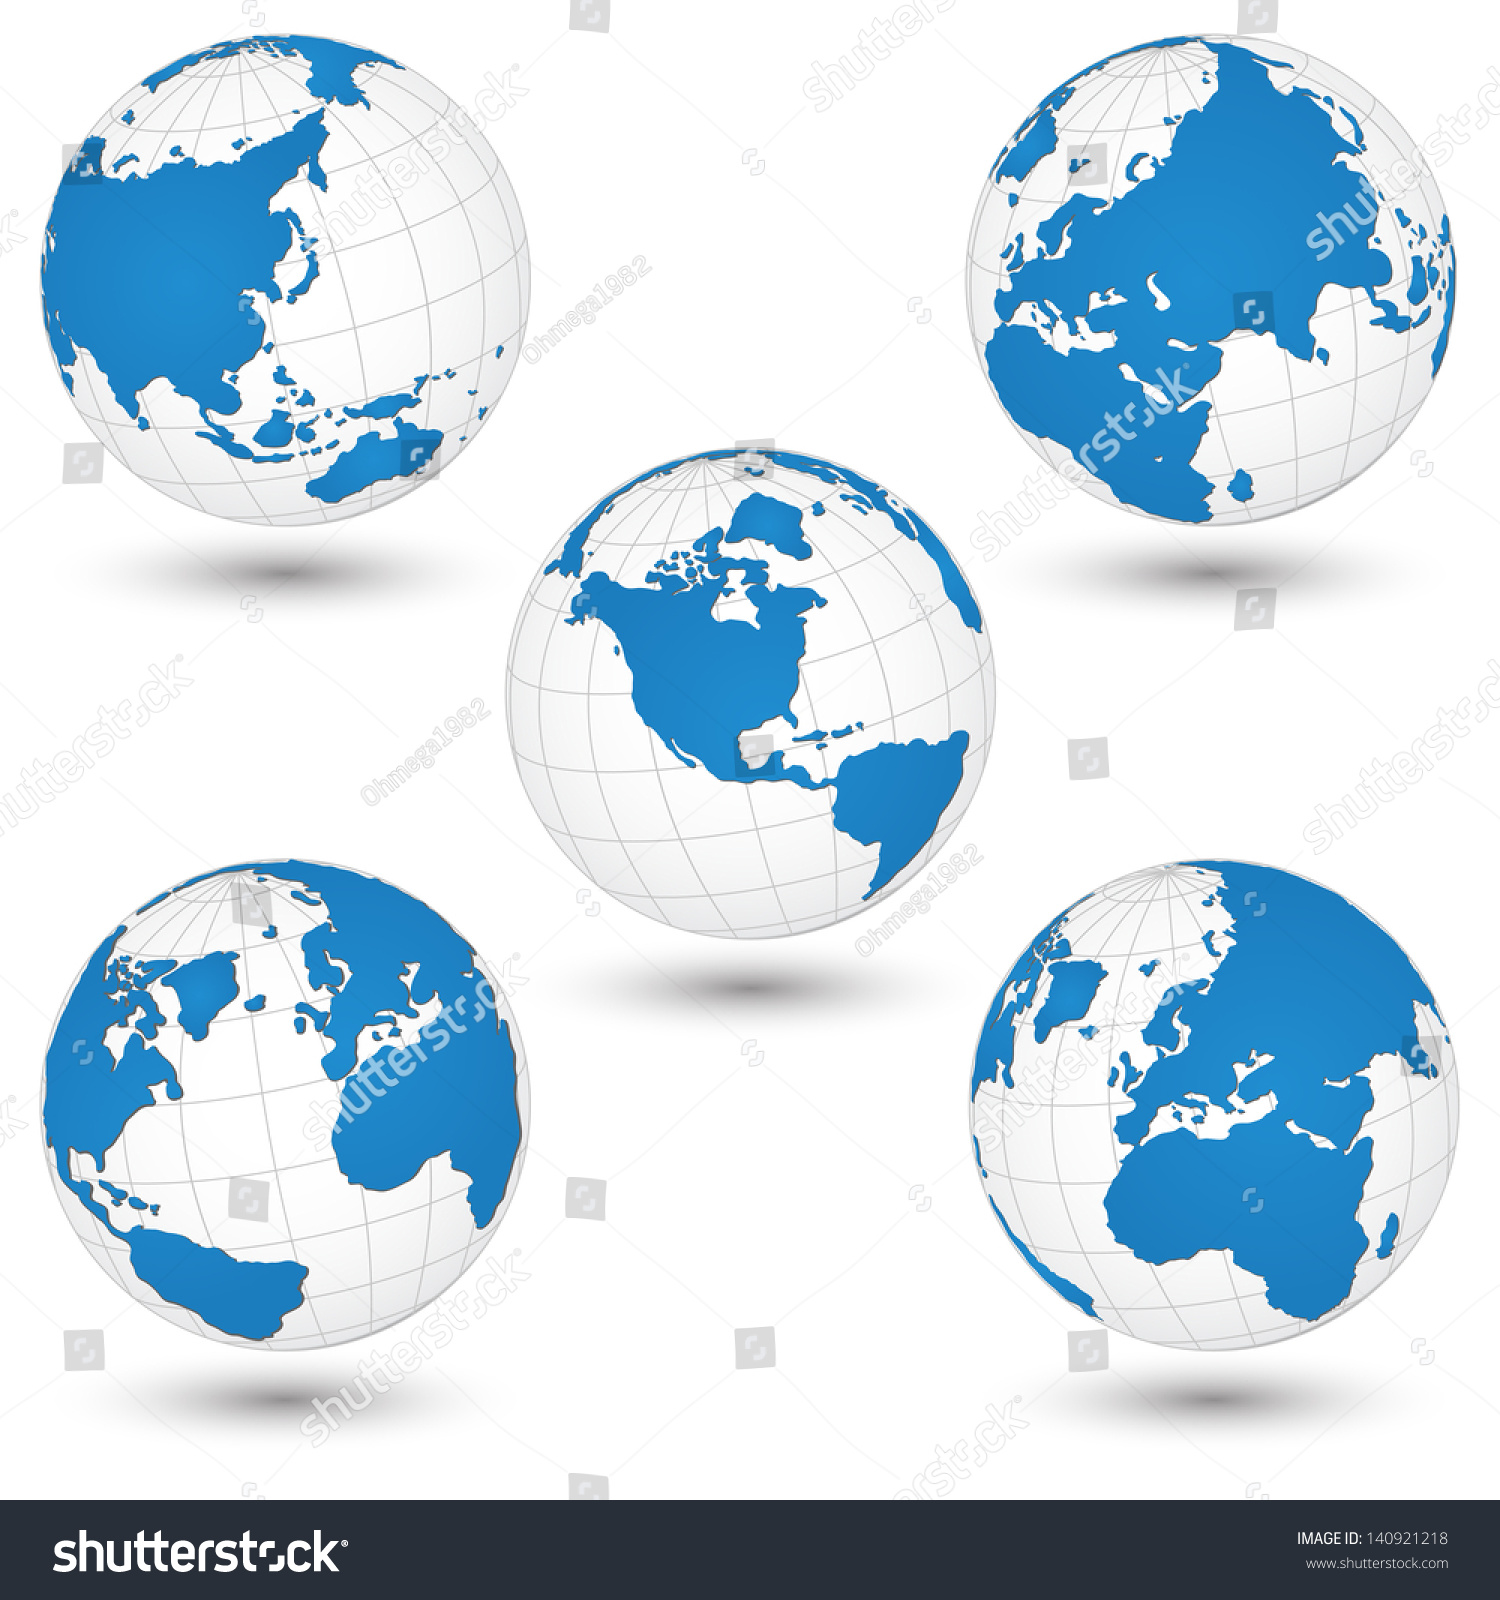 World map globe detail vector illustration stock vector hd royalty world map and globe detail vector illustration eps 10 gumiabroncs Gallery